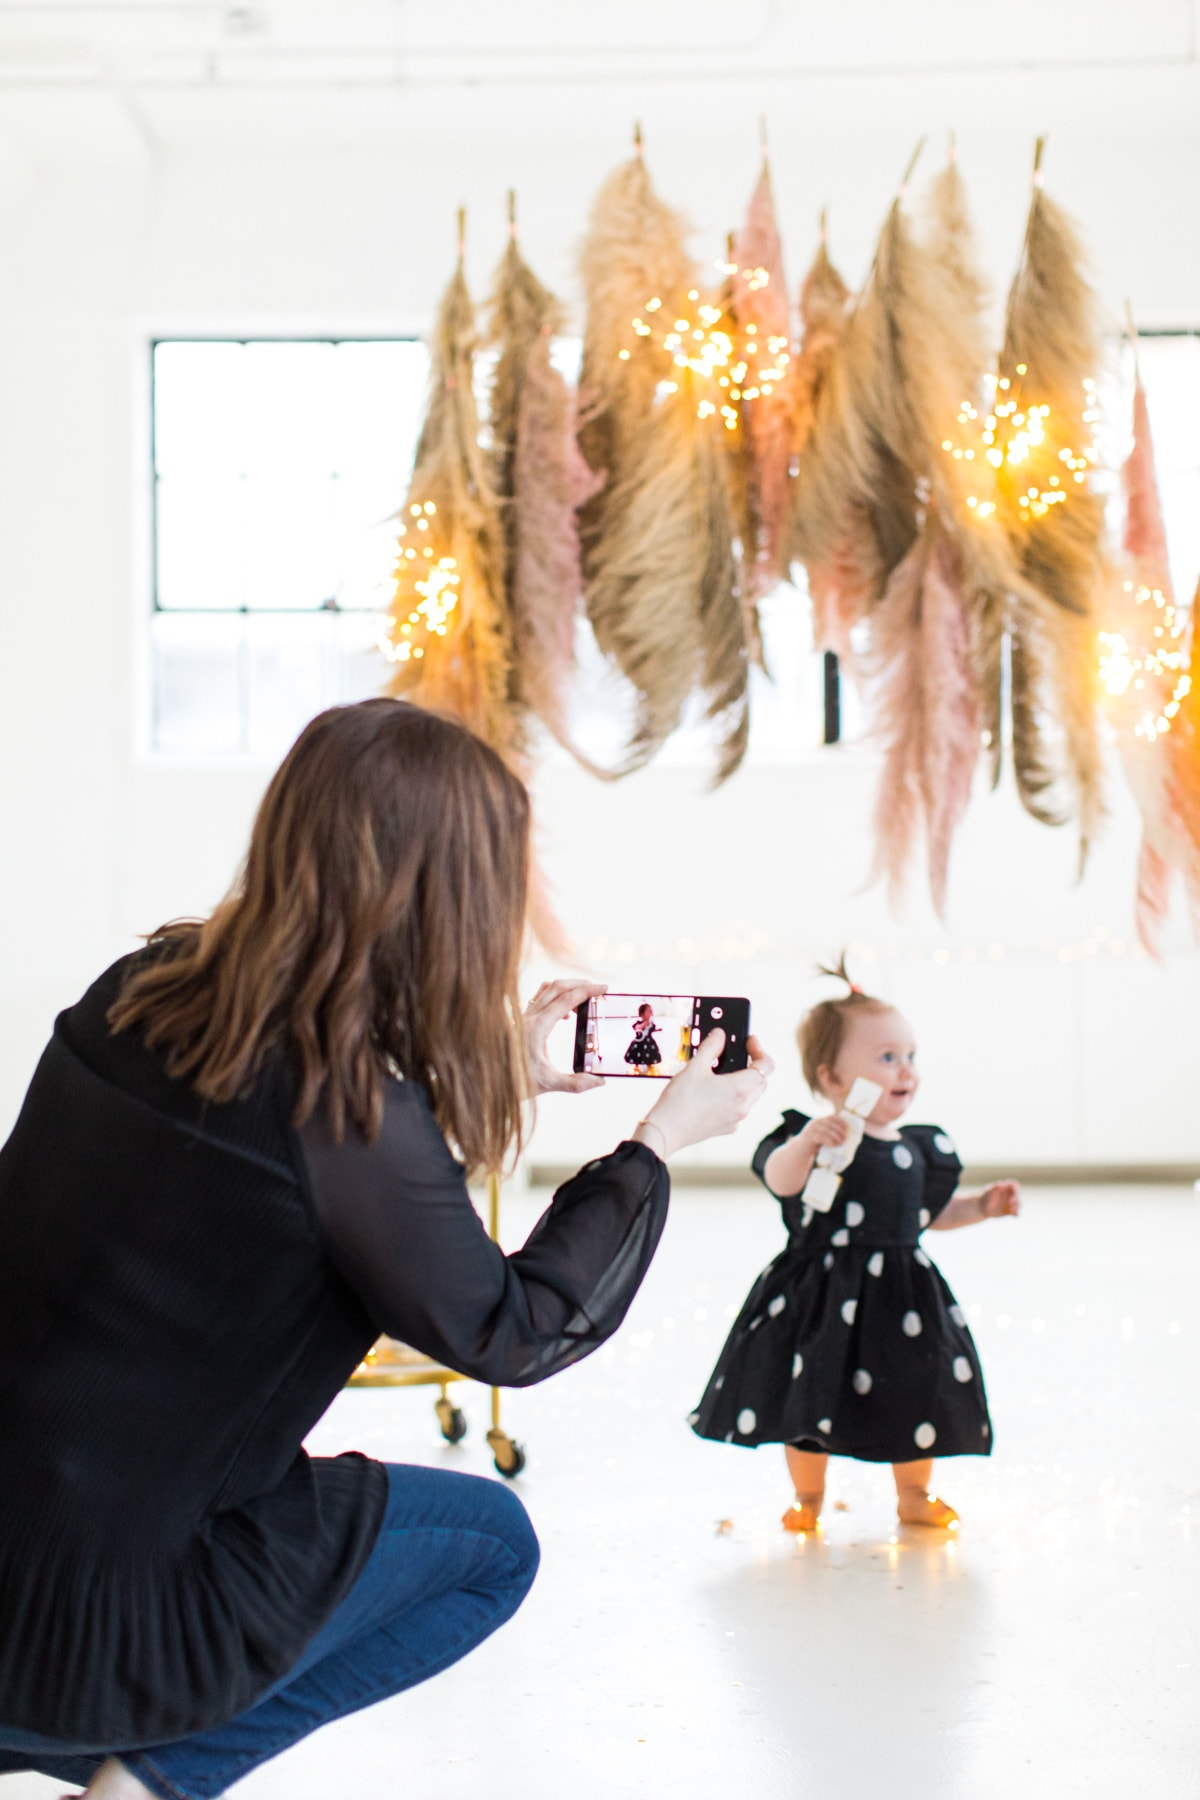 Snapping photos of the photobooth - Sharing photos via Live Albums and google hub! Pampas Grass DIY Photo Backdrop by top Houston lifestyle blogger Ashley Rose of Sugar & Cloth #diy #nye #backdrop #photography #photos #google #holidays #howto #weddings #parties #entertaining